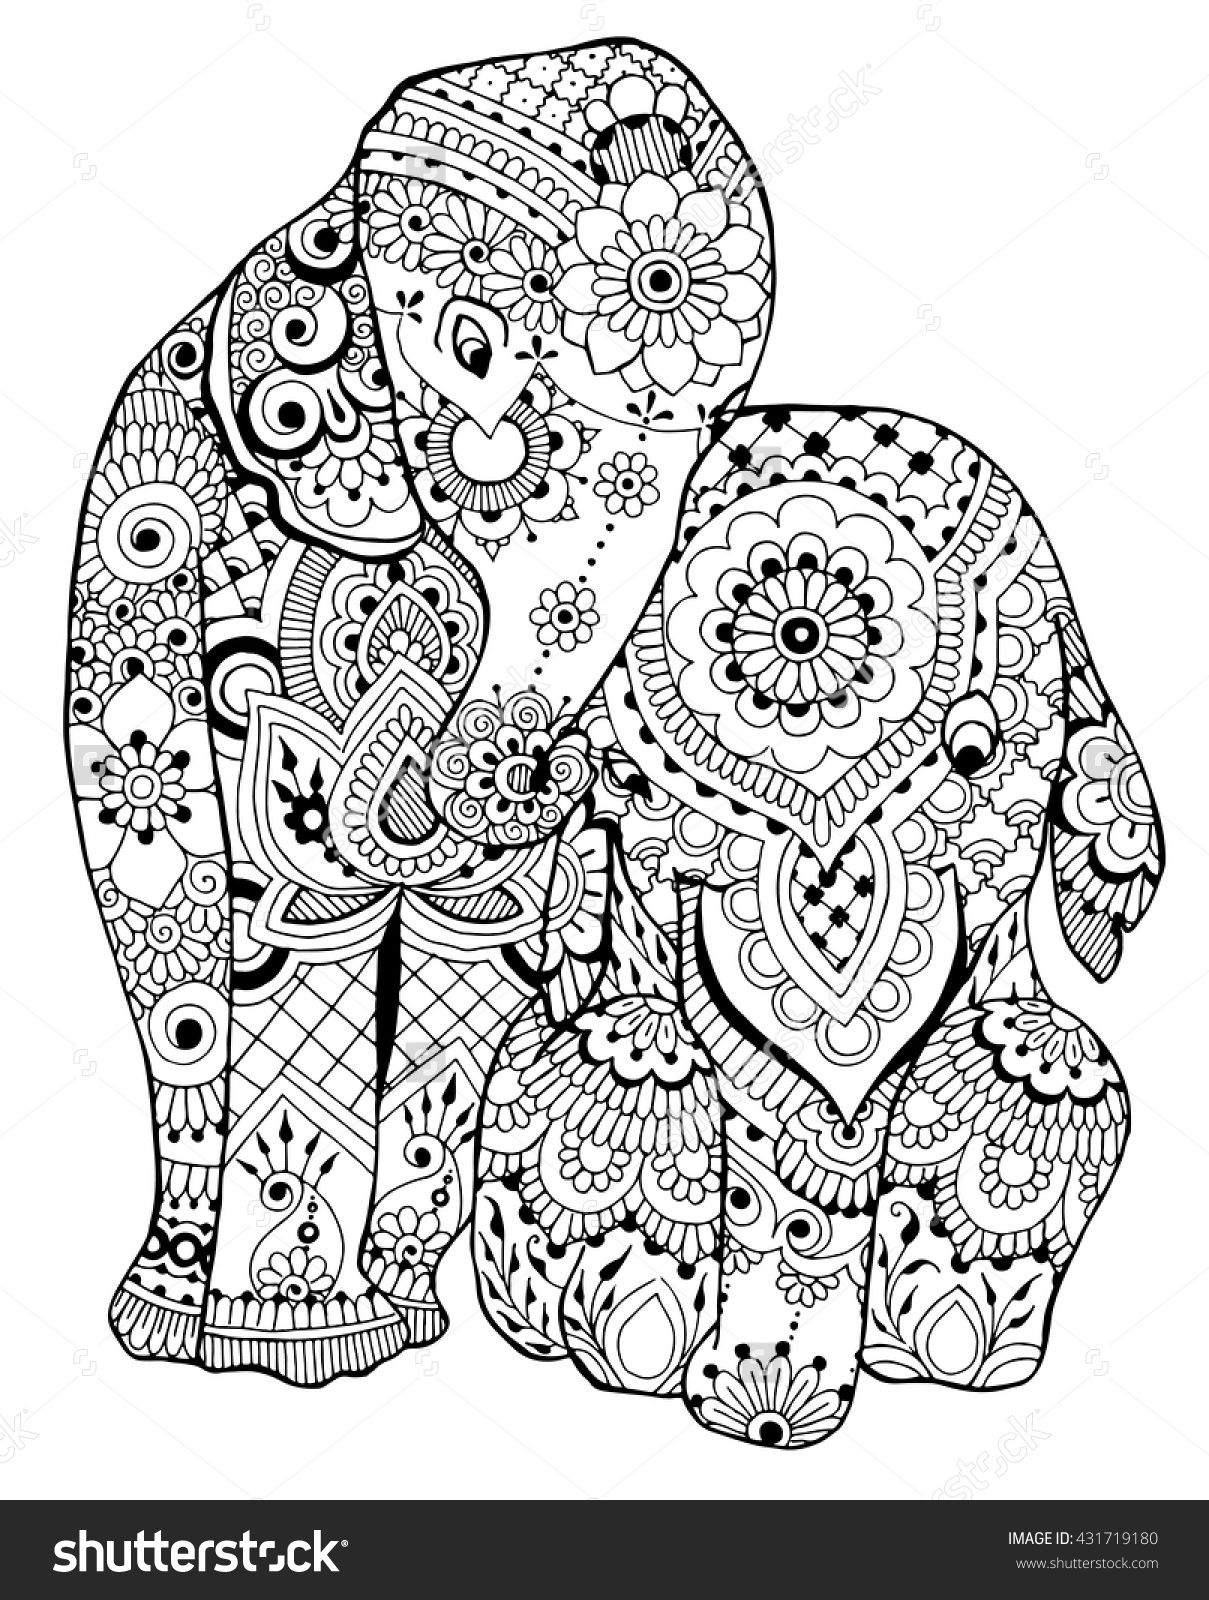 Elephants coloring page I 431719180 : Shutterstock | Coloring ideas ...